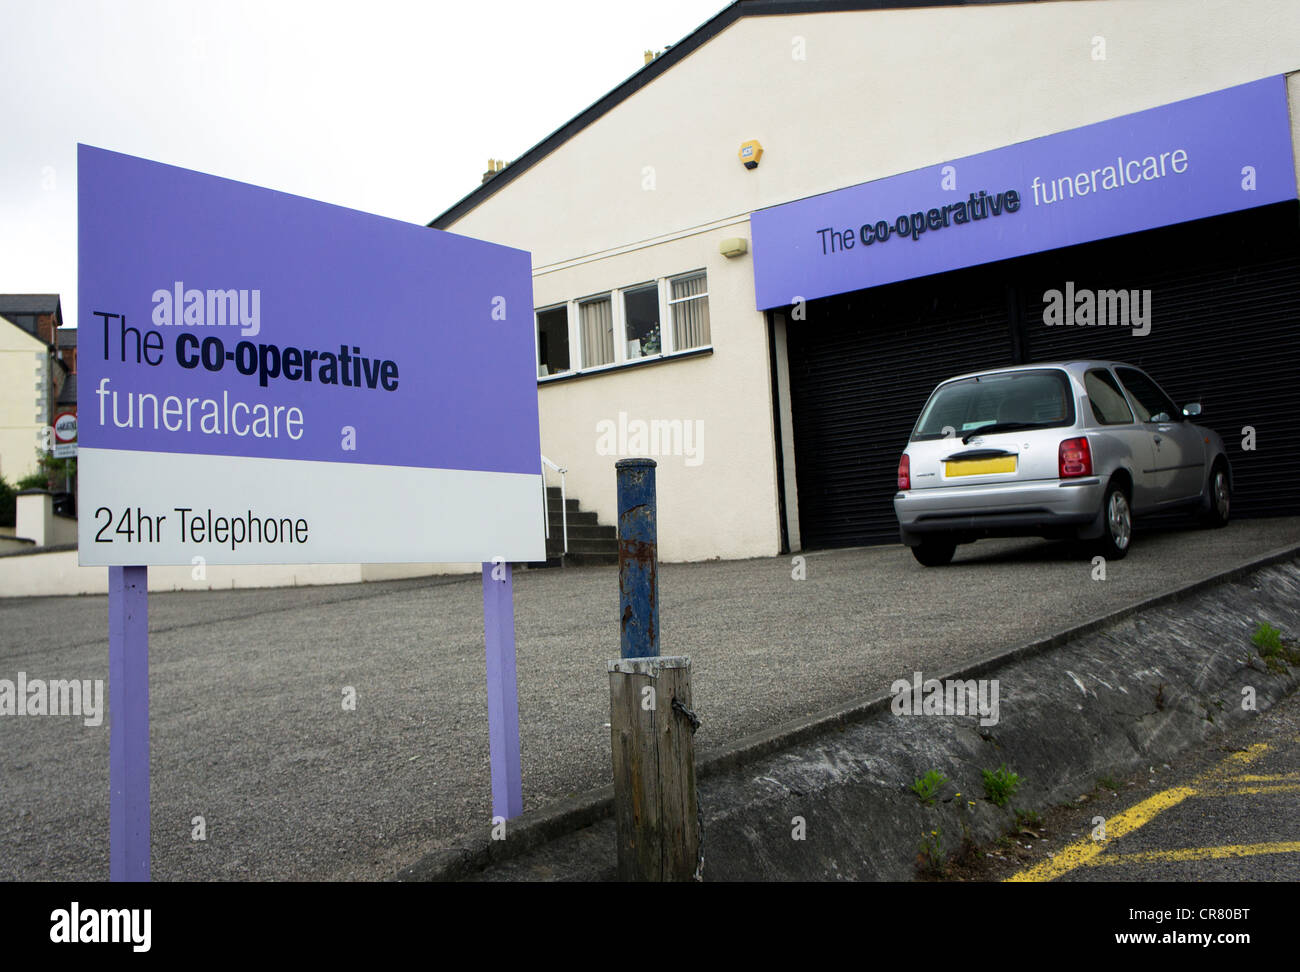 The Co-Operative funeralcare company, UK - Stock Image